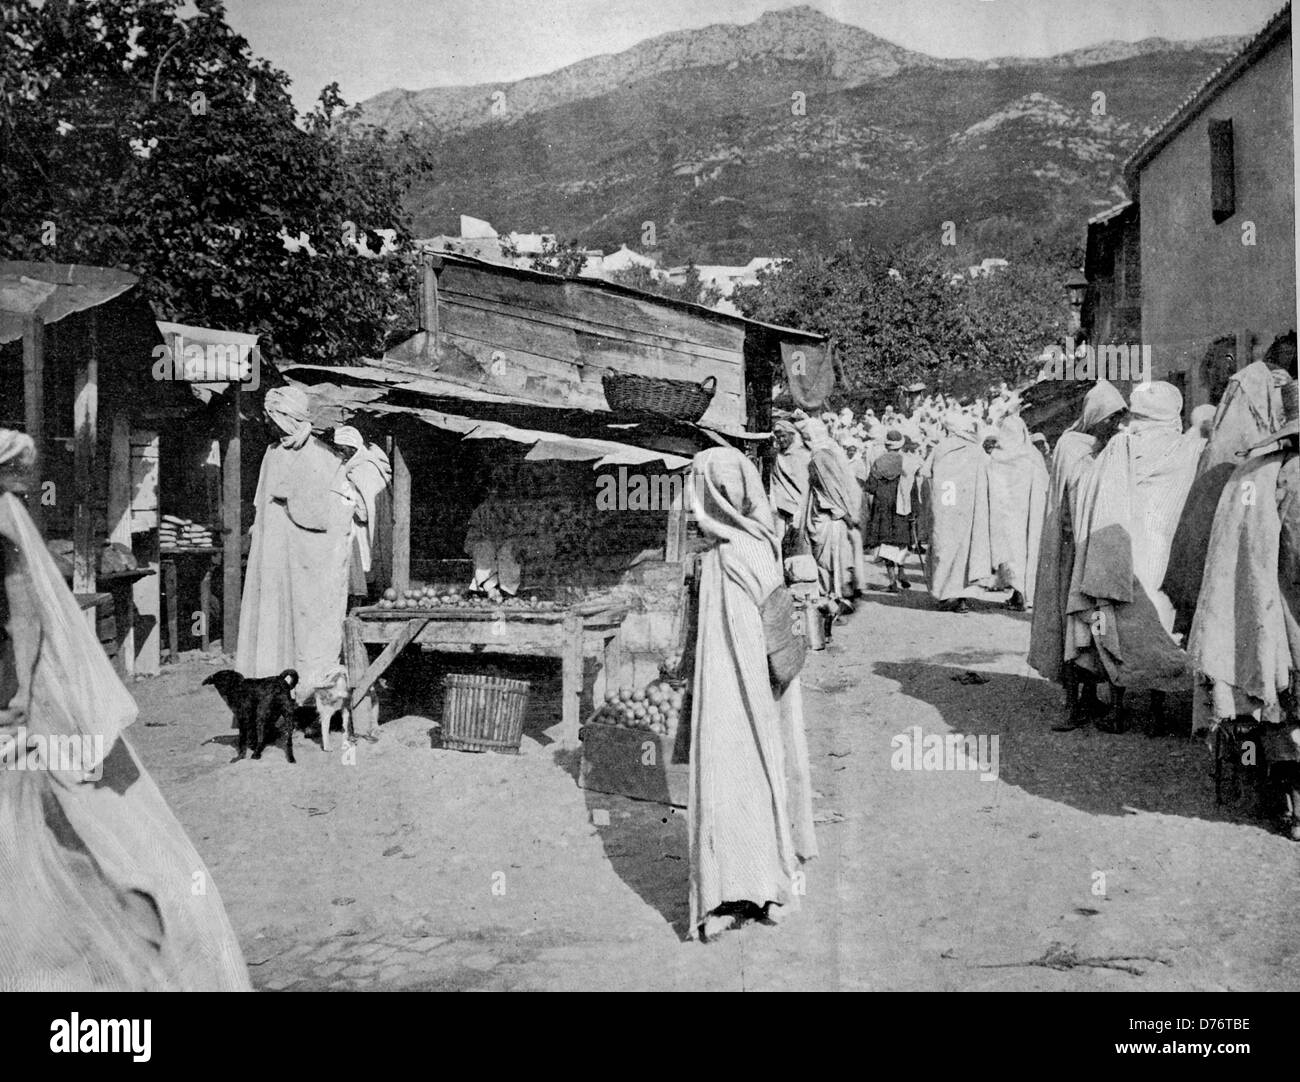 One of the first autotype photographs of a street scene in Bougie, Algeria Stock Photo